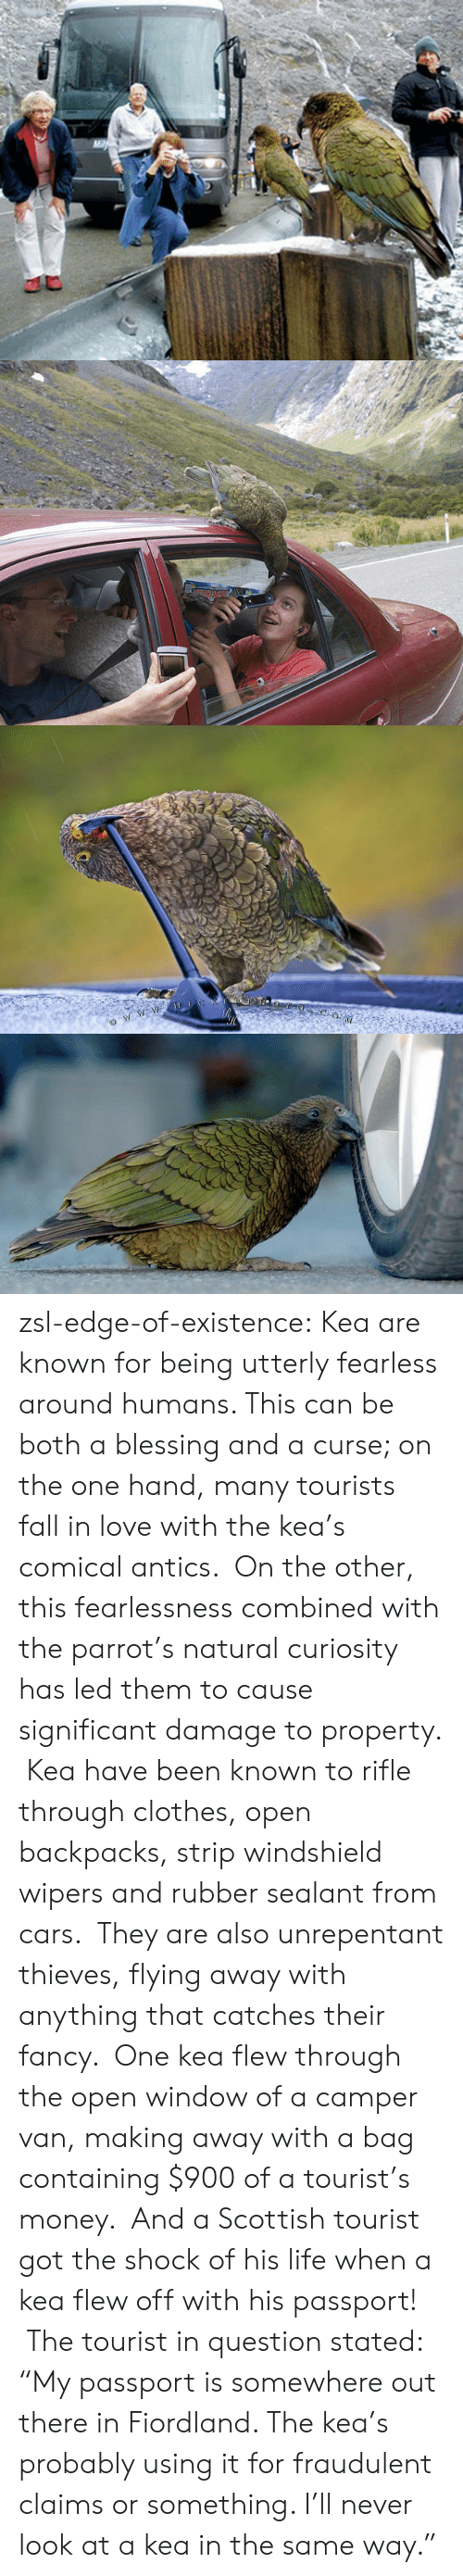 """comical: zsl-edge-of-existence:  Kea are known for being utterly fearless around humans. This can be both a blessing and a curse; on the one hand, many tourists fall in love with the kea's comical antics. On the other, this fearlessness combined with the parrot's natural curiosity has led them to cause significant damage to property. Kea have been known to rifle through clothes, open backpacks, strip windshield wipers and rubber sealant from cars. They are also unrepentant thieves, flying away with anything that catches their fancy. One kea flew through the open window of a camper van, making away with a bag containing $900 of a tourist's money. And a Scottish tourist got the shock of his life when a kea flew off with his passport! The tourist in question stated: """"My passport is somewhere out there in Fiordland. The kea's probably using it for fraudulent claims or something. I'll never look at a kea in the same way."""""""